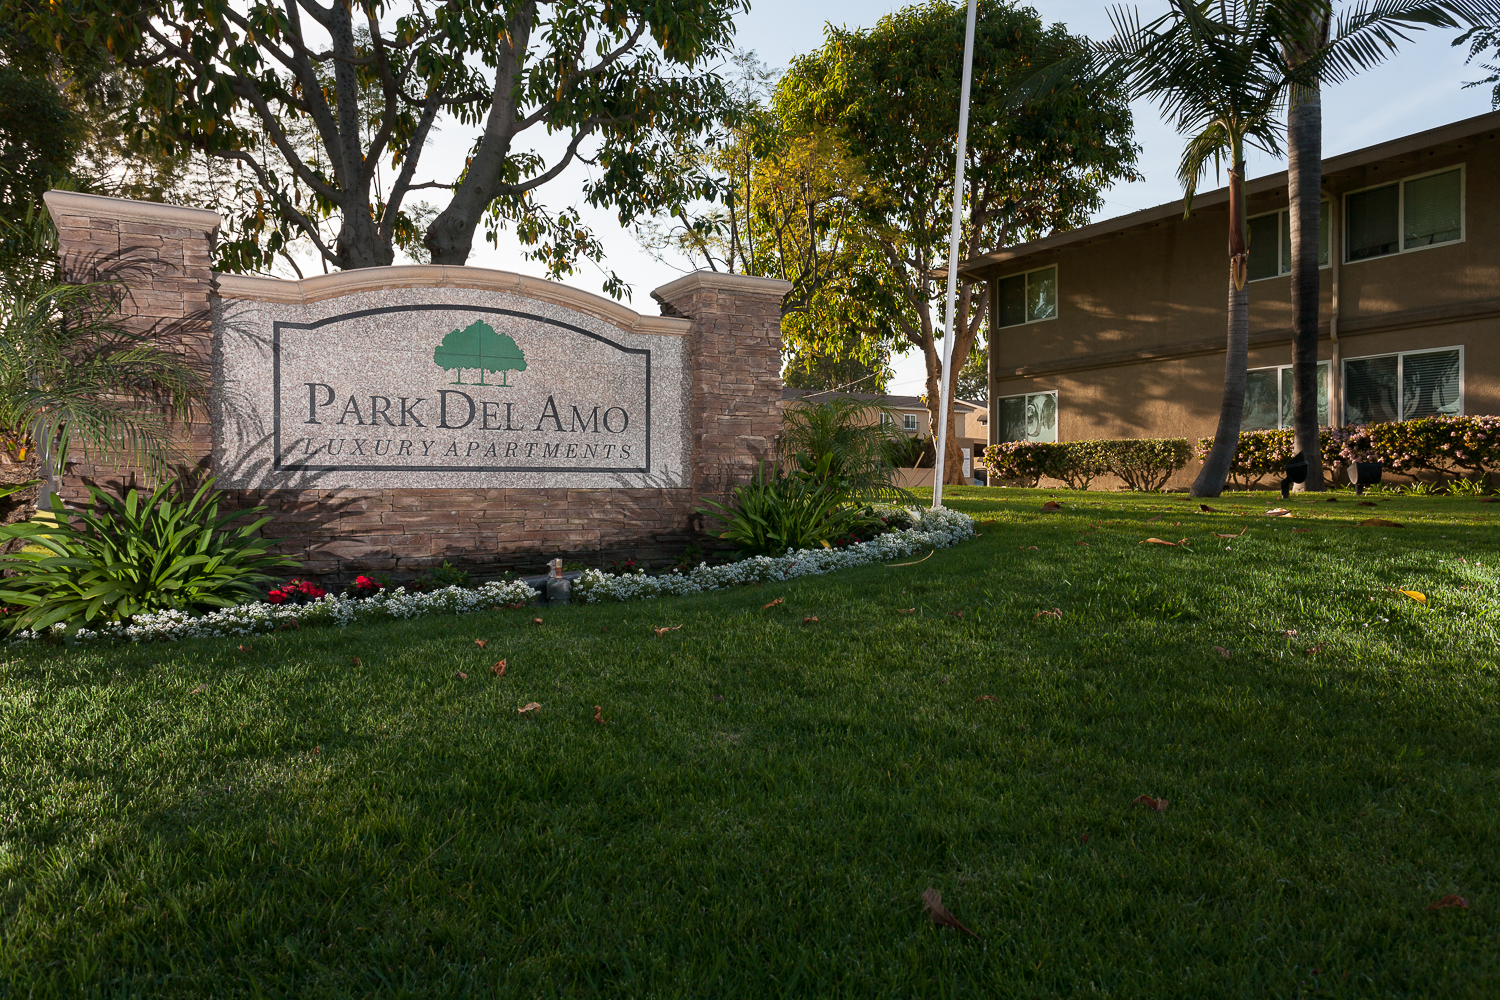 apartments for rent in lakewood ca park del amo park del amo apartments in lakewood ca